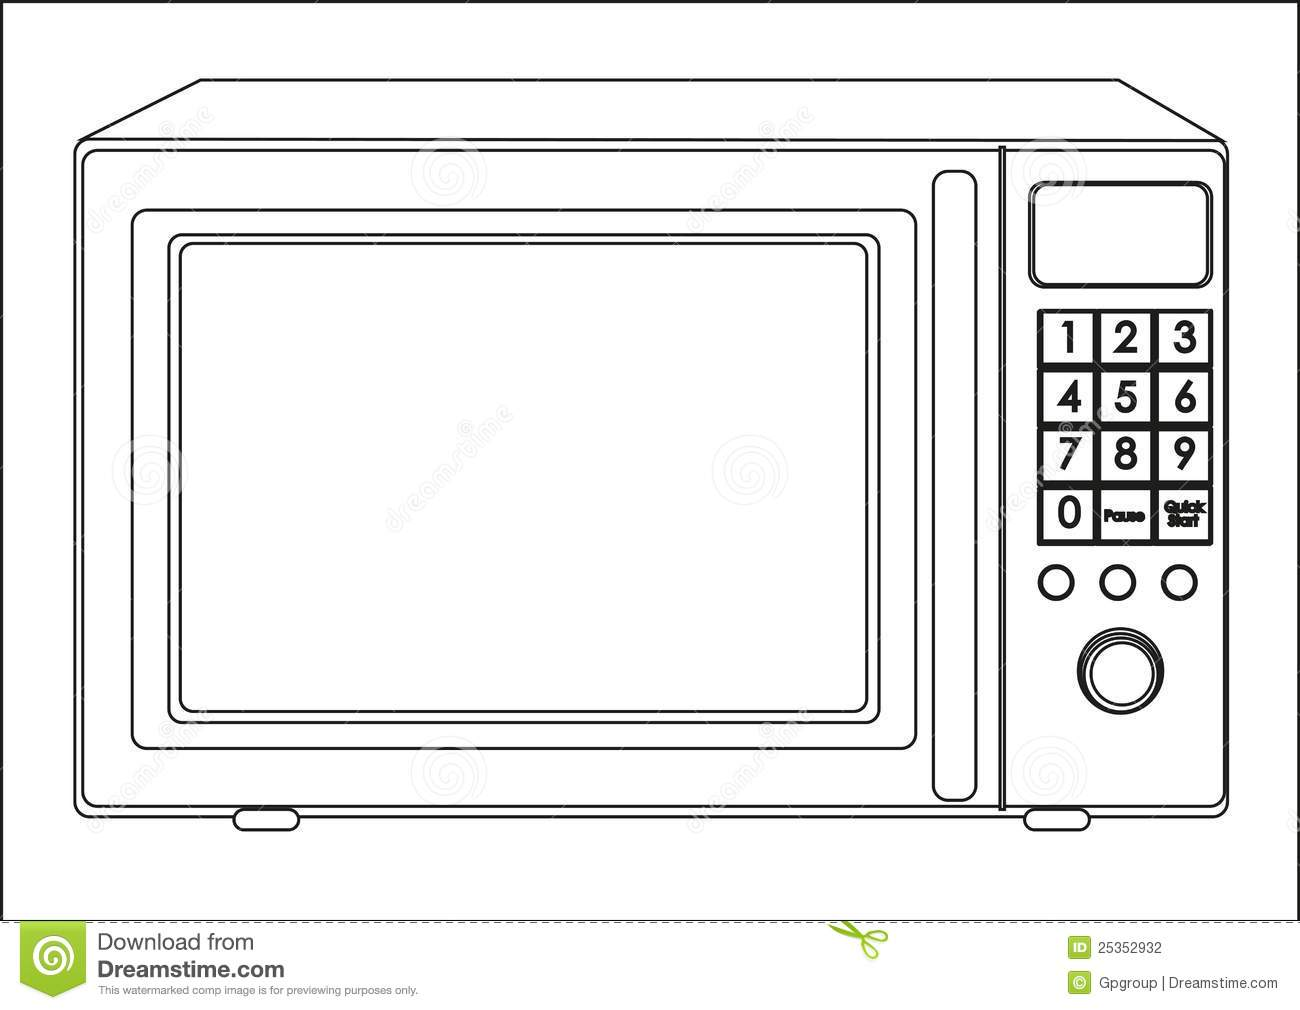 microwave clipart. royalty-free stock photo microwave clipart